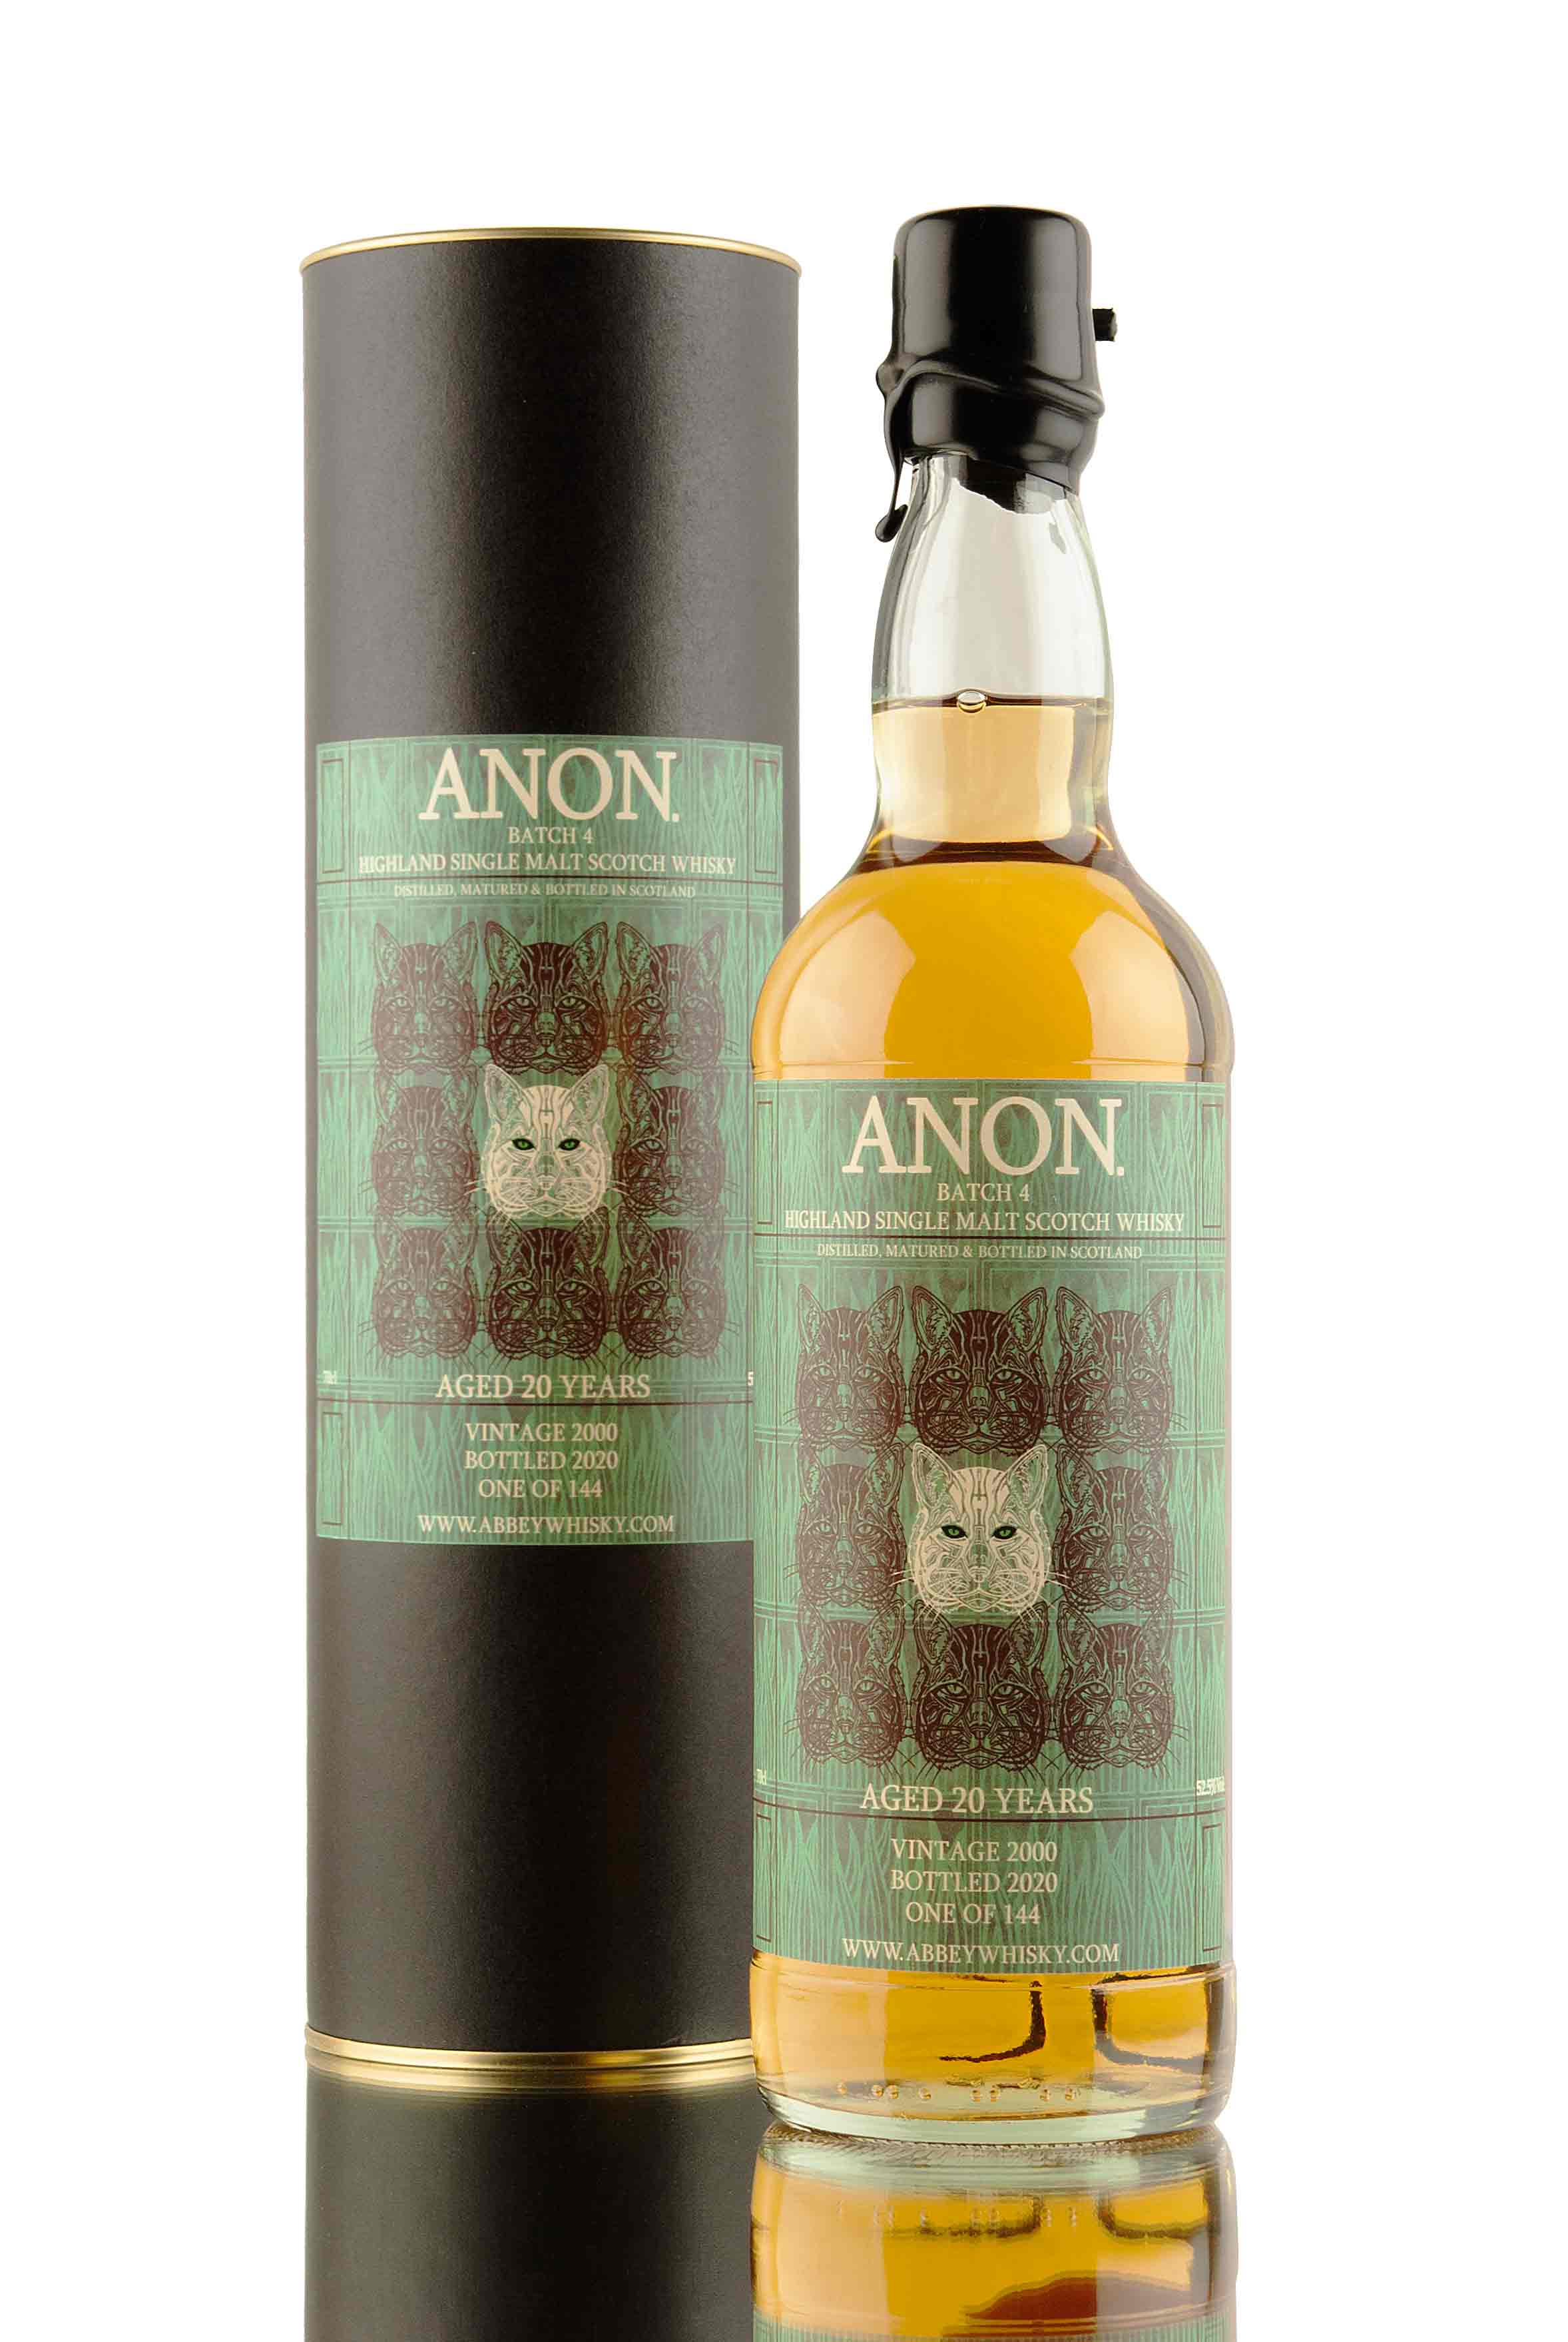 Anon. Batch 4 - 20 Year Old - 2000 | AW Exclusive | Abbey Whisky | Clynelish Distillery